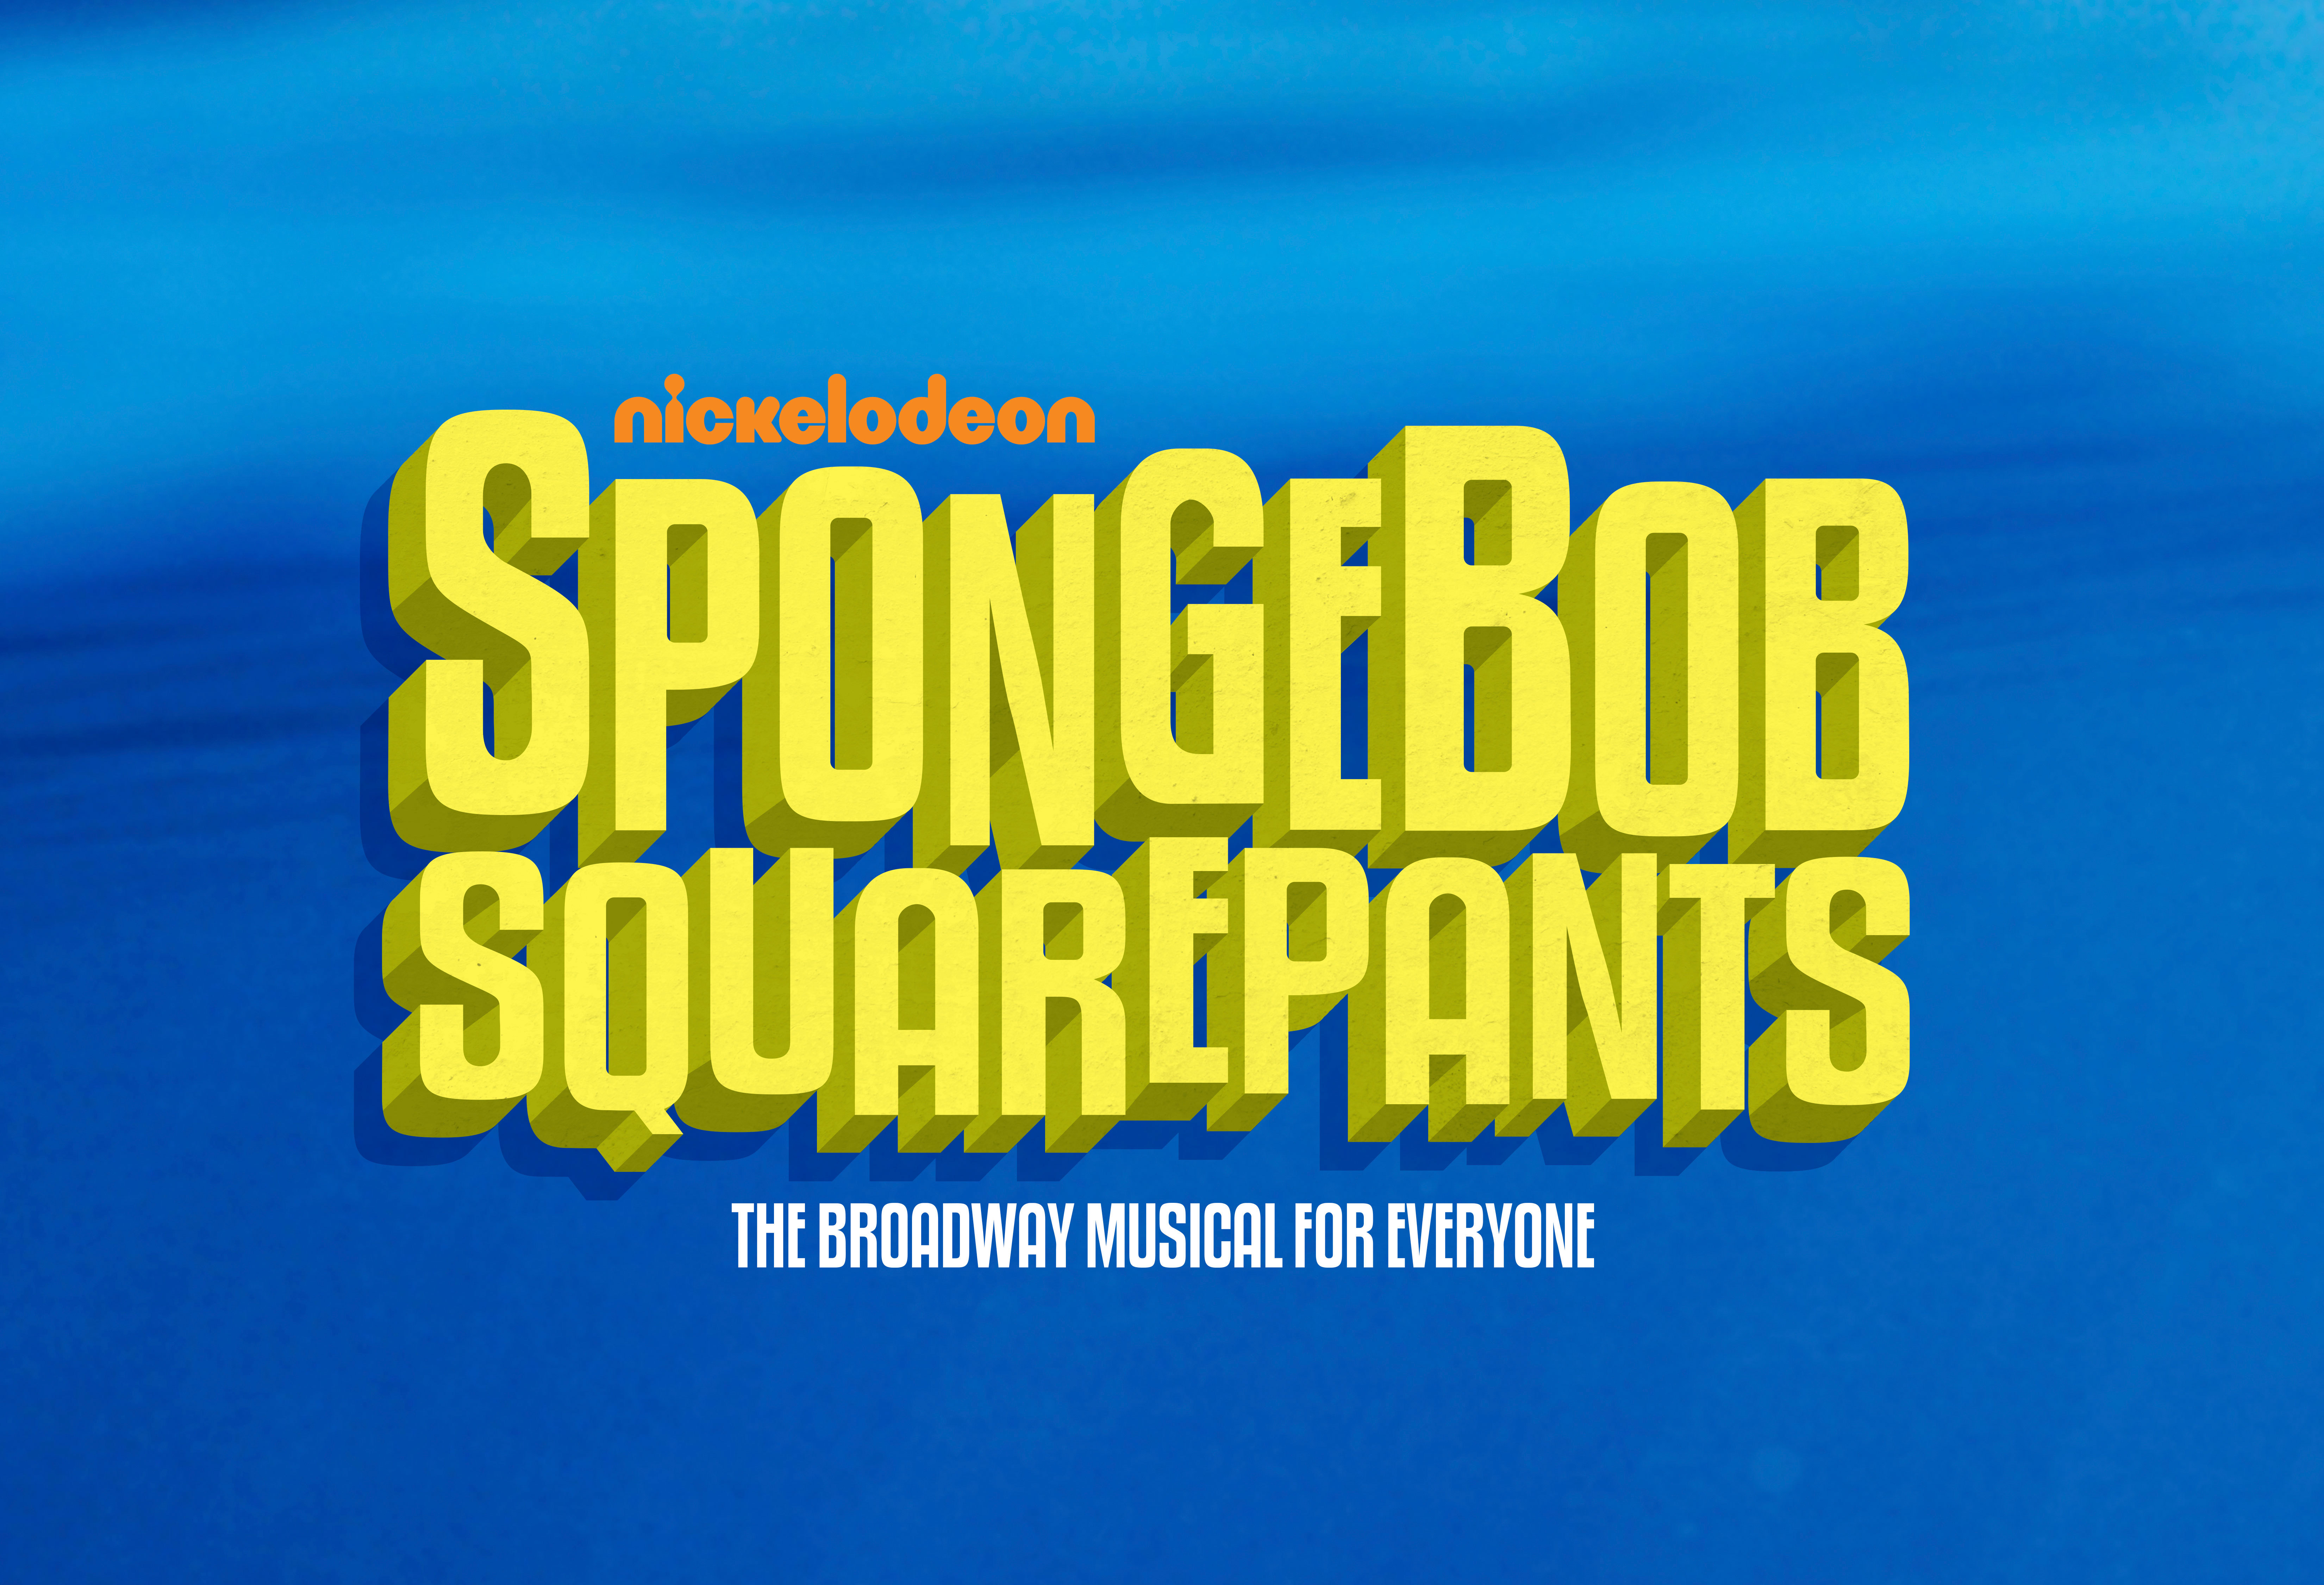 SpongeBob SquarePants Will Open On Broadway At The Palace Theatre